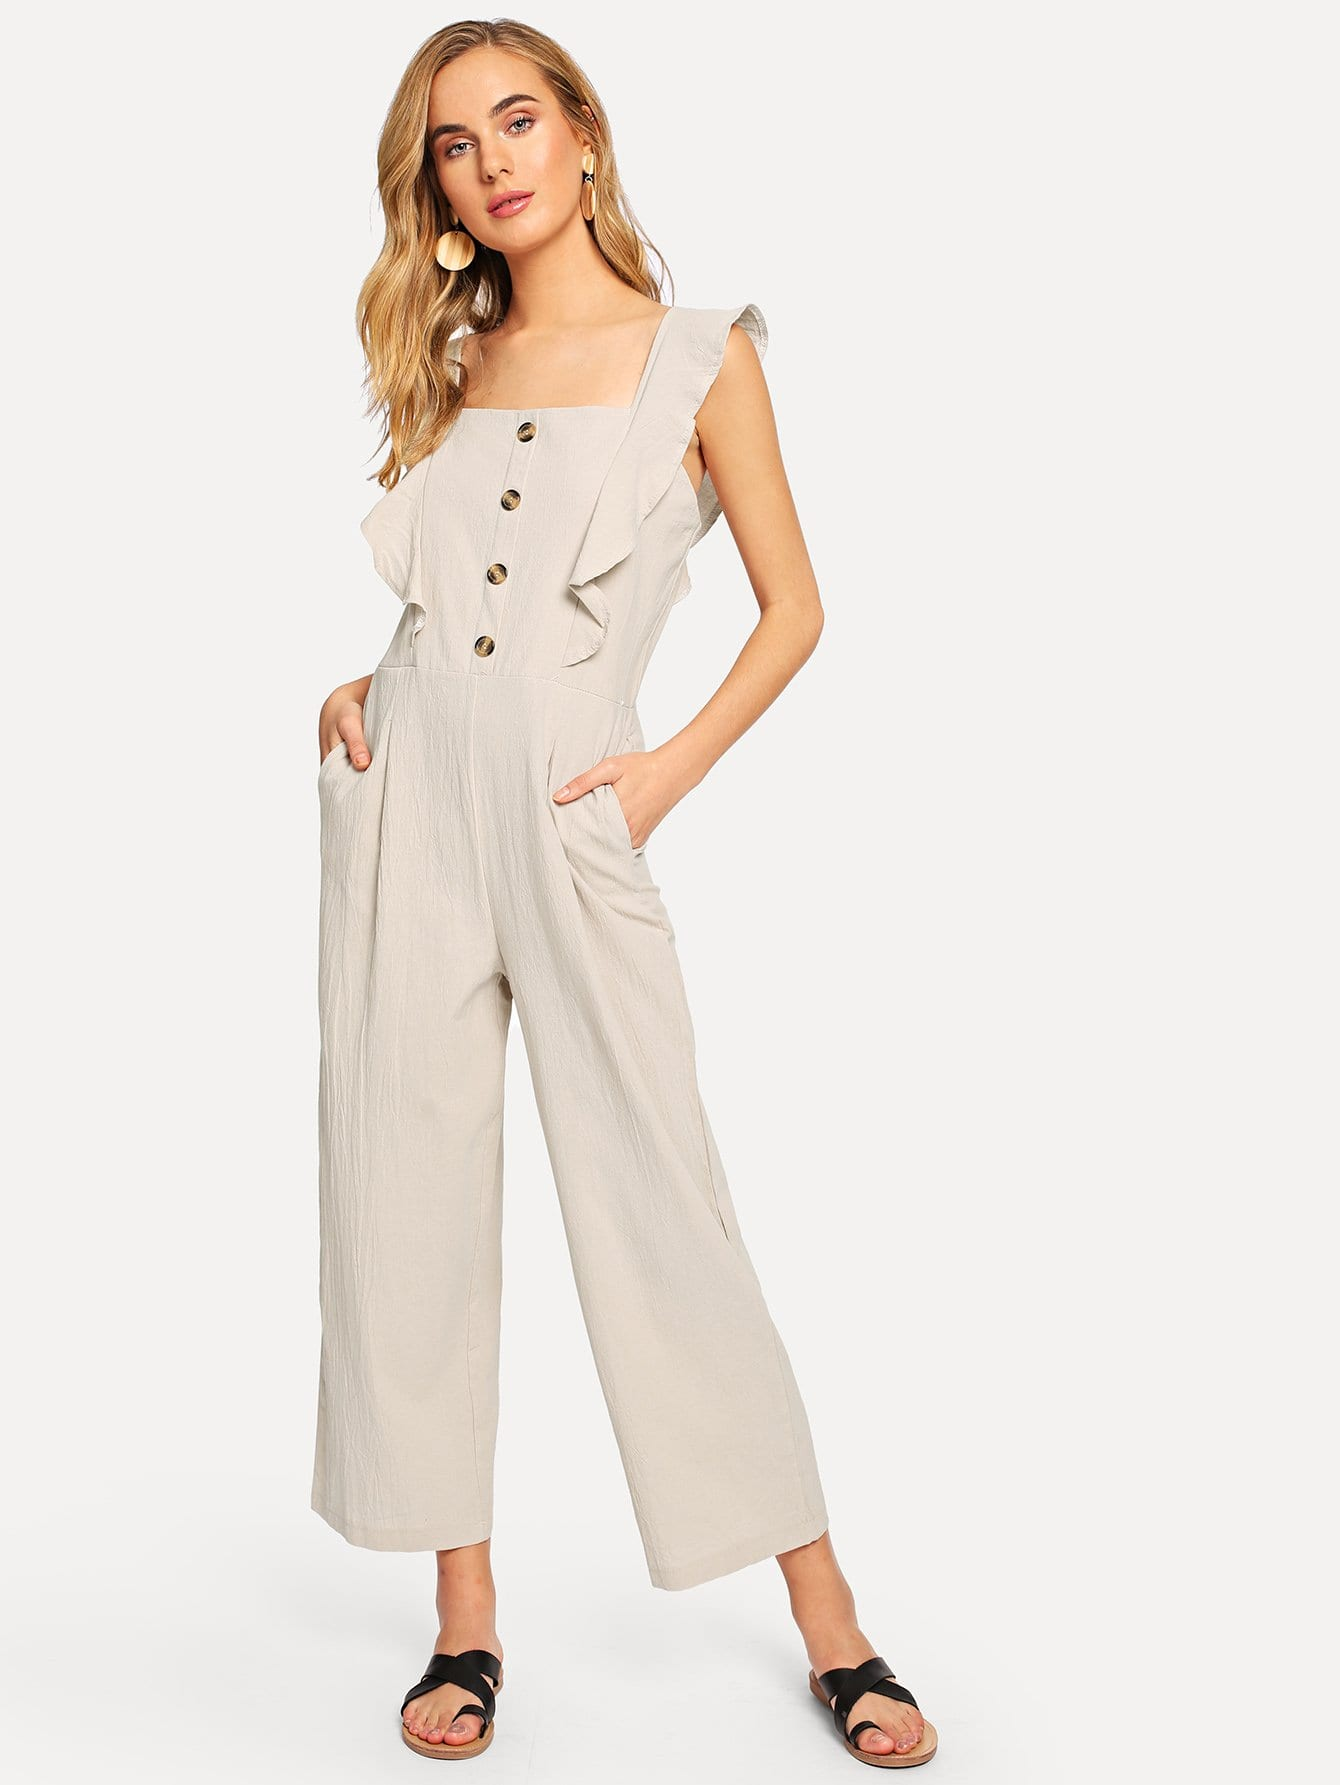 Single Breasted Ruffle Trim Jumpsuit choker neck embroidered ruffle trim jumpsuit